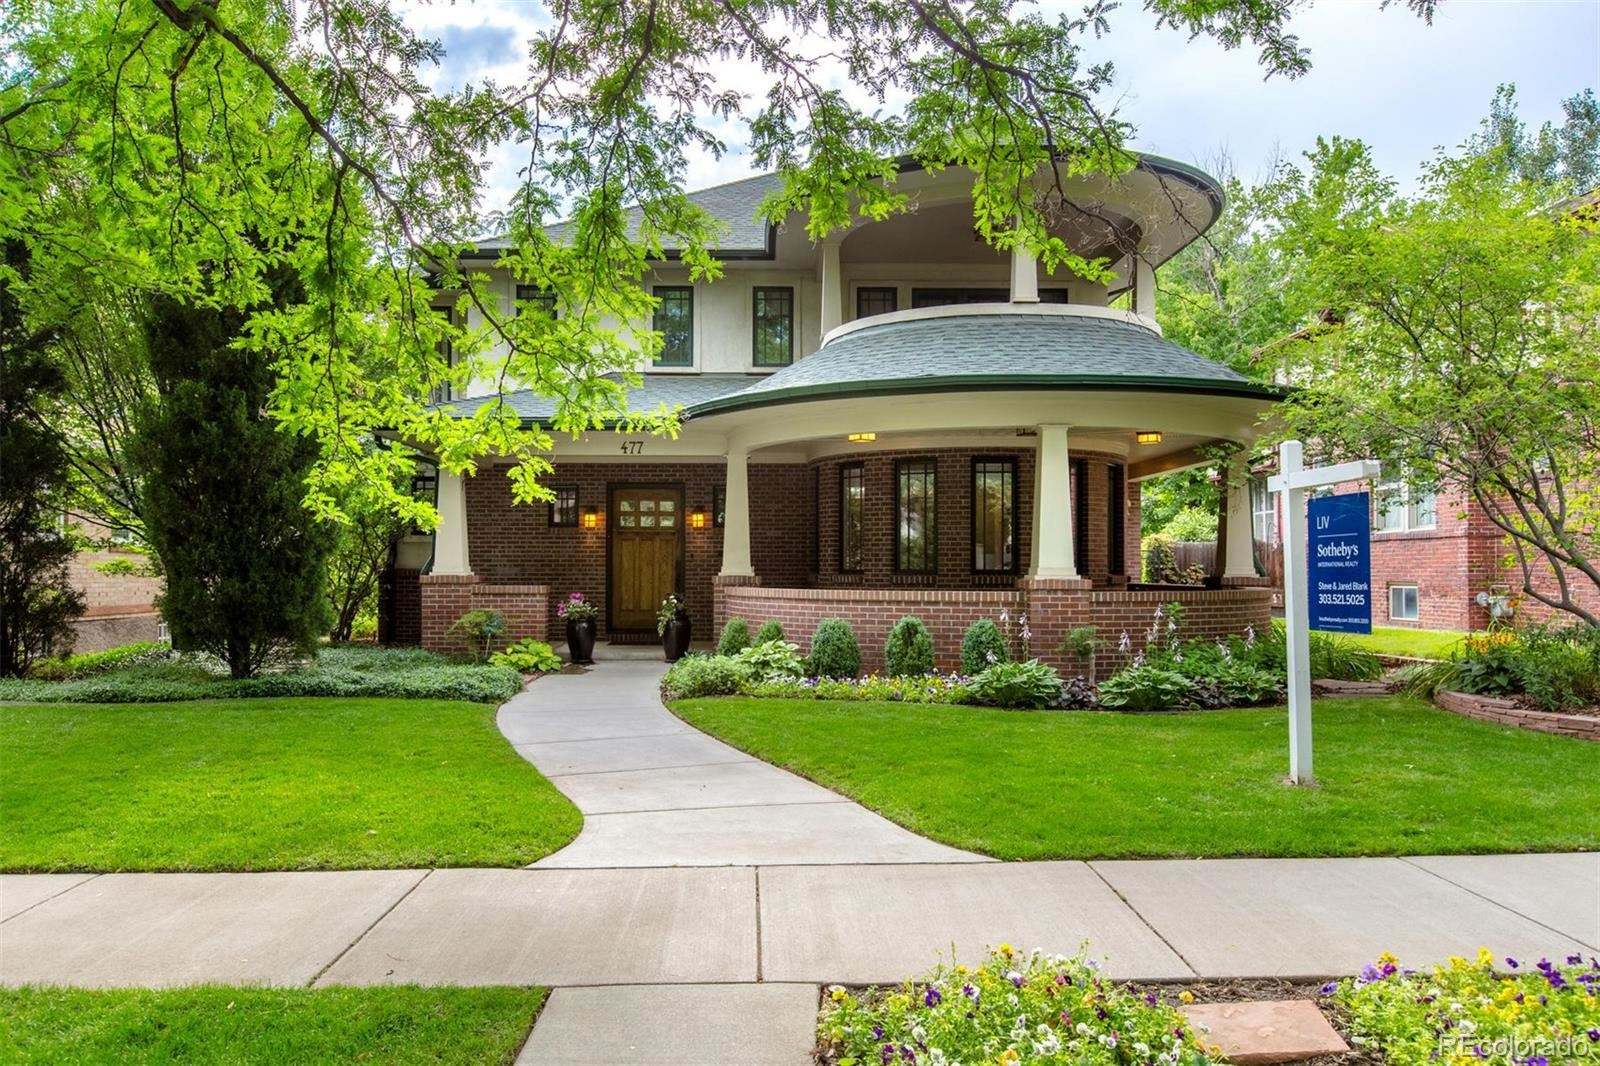 477 N High Street, Denver, CO 80218 - #: 8963649